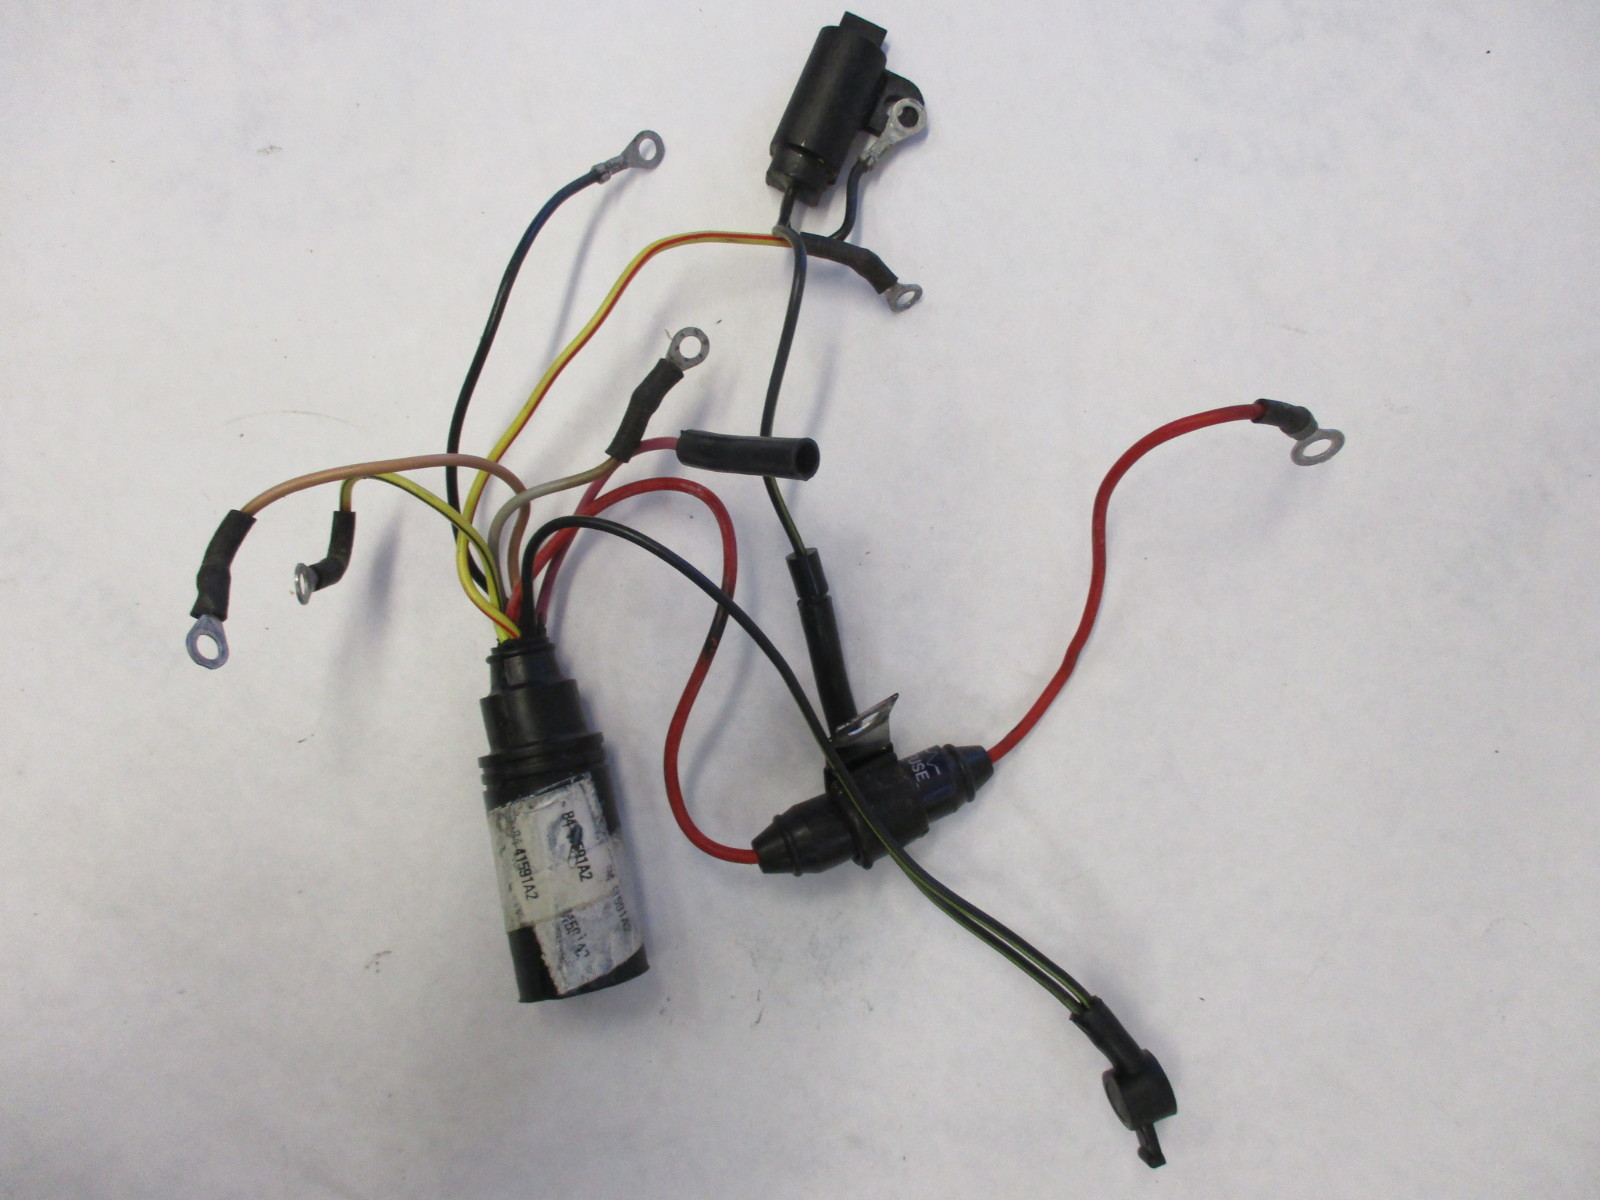 Wiring Harness For Mercury Outboard Motor Diagrams 45876 Mercruiser 41591a3 Engine Wire For70 90 Hp 3 Cyl Diagram